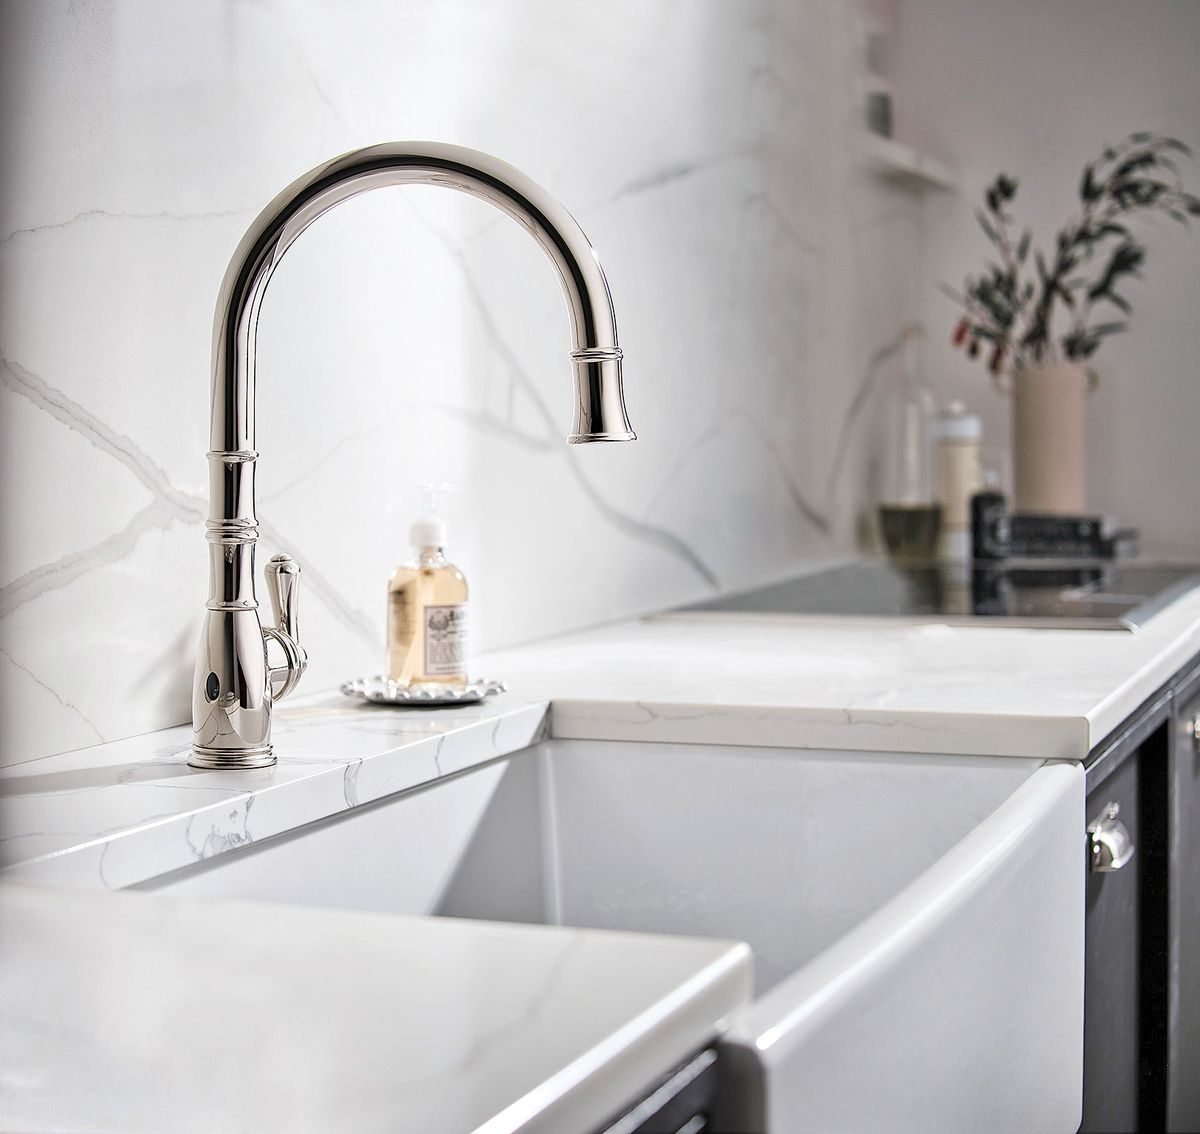 31 New Kitchen and Bath Products: 2020